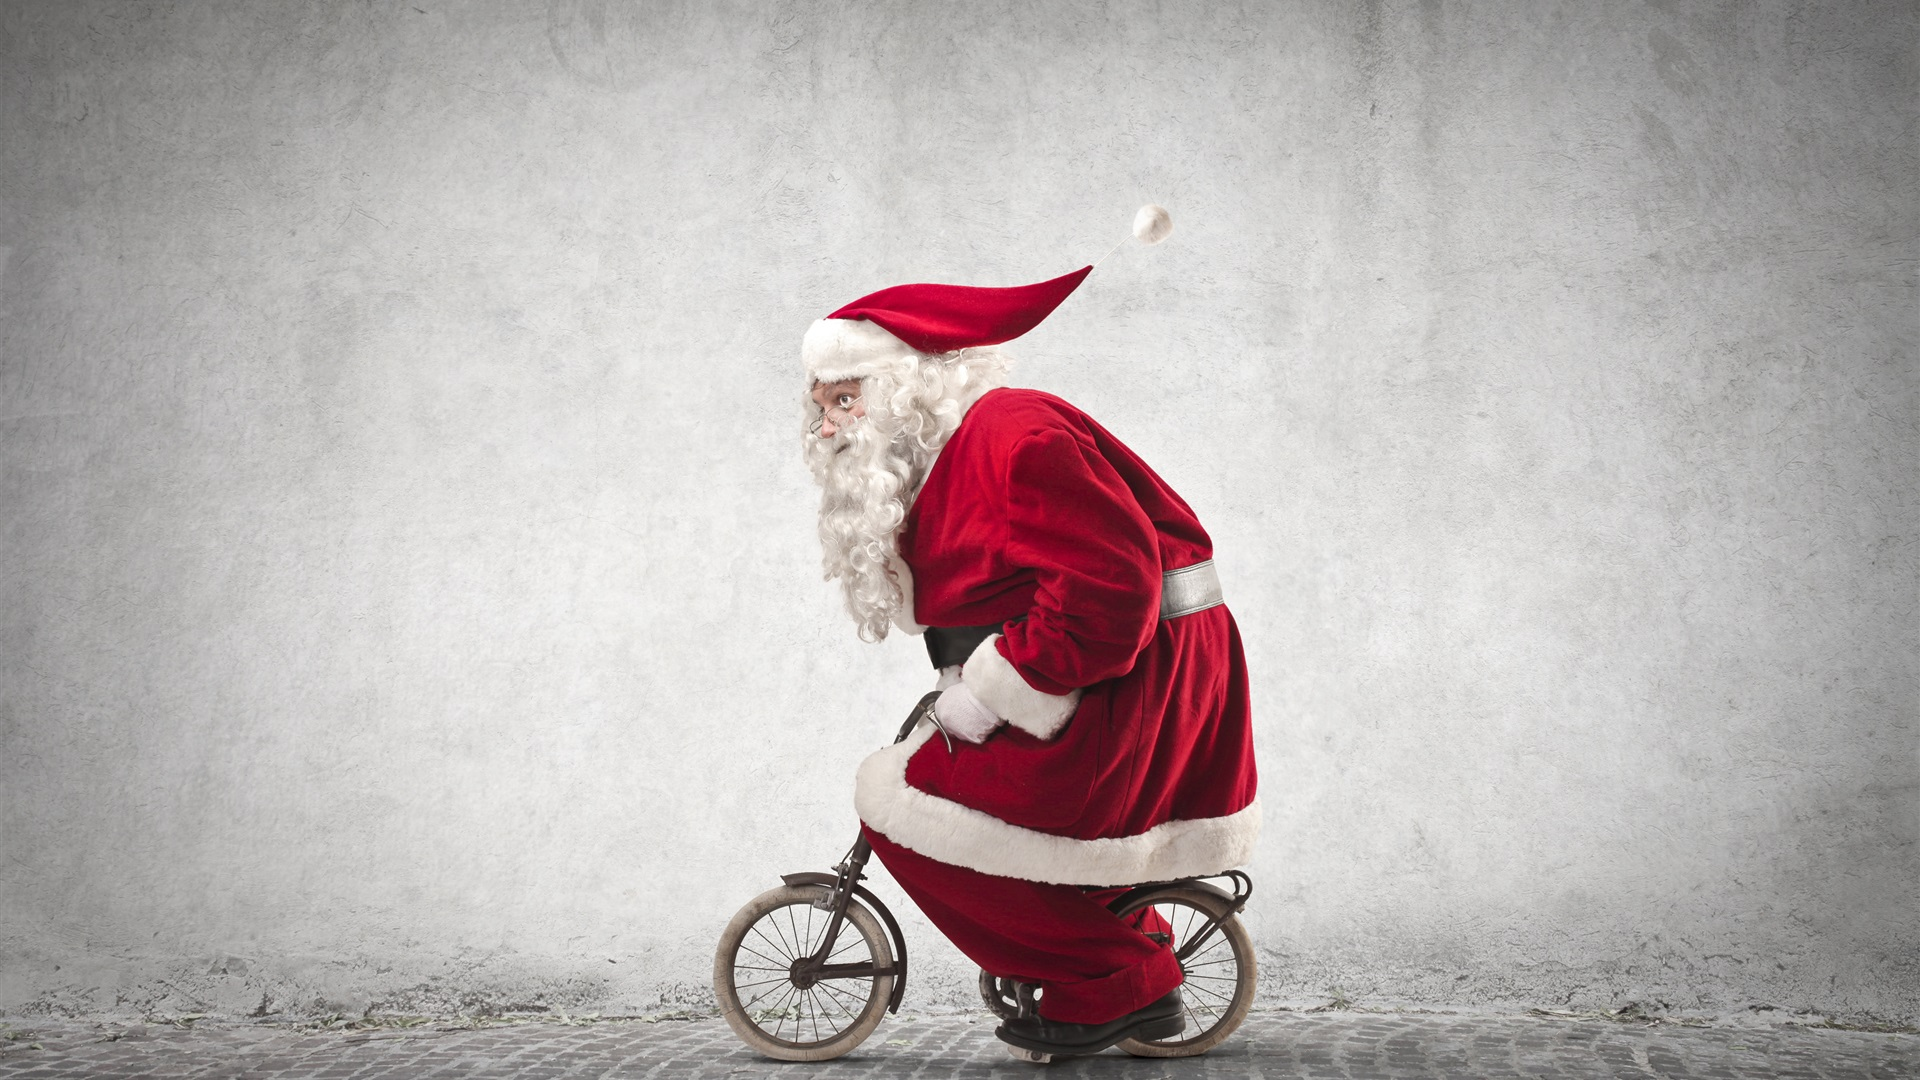 Santa-Claus-riding-a-small-bike-humor-red-coat-glasses-Christmas-theme_1920x1080.jpg